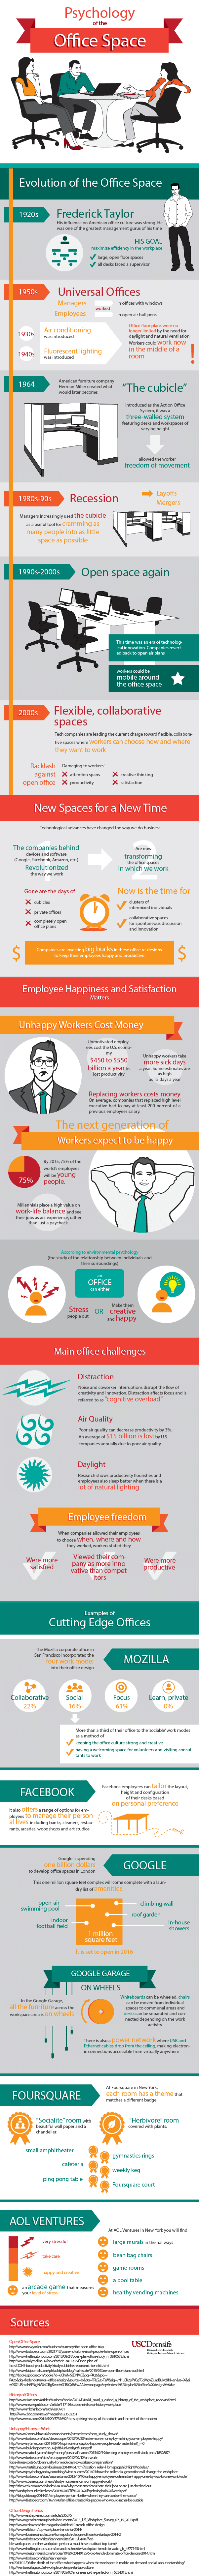 Psychology of the Office Space – An Infographic